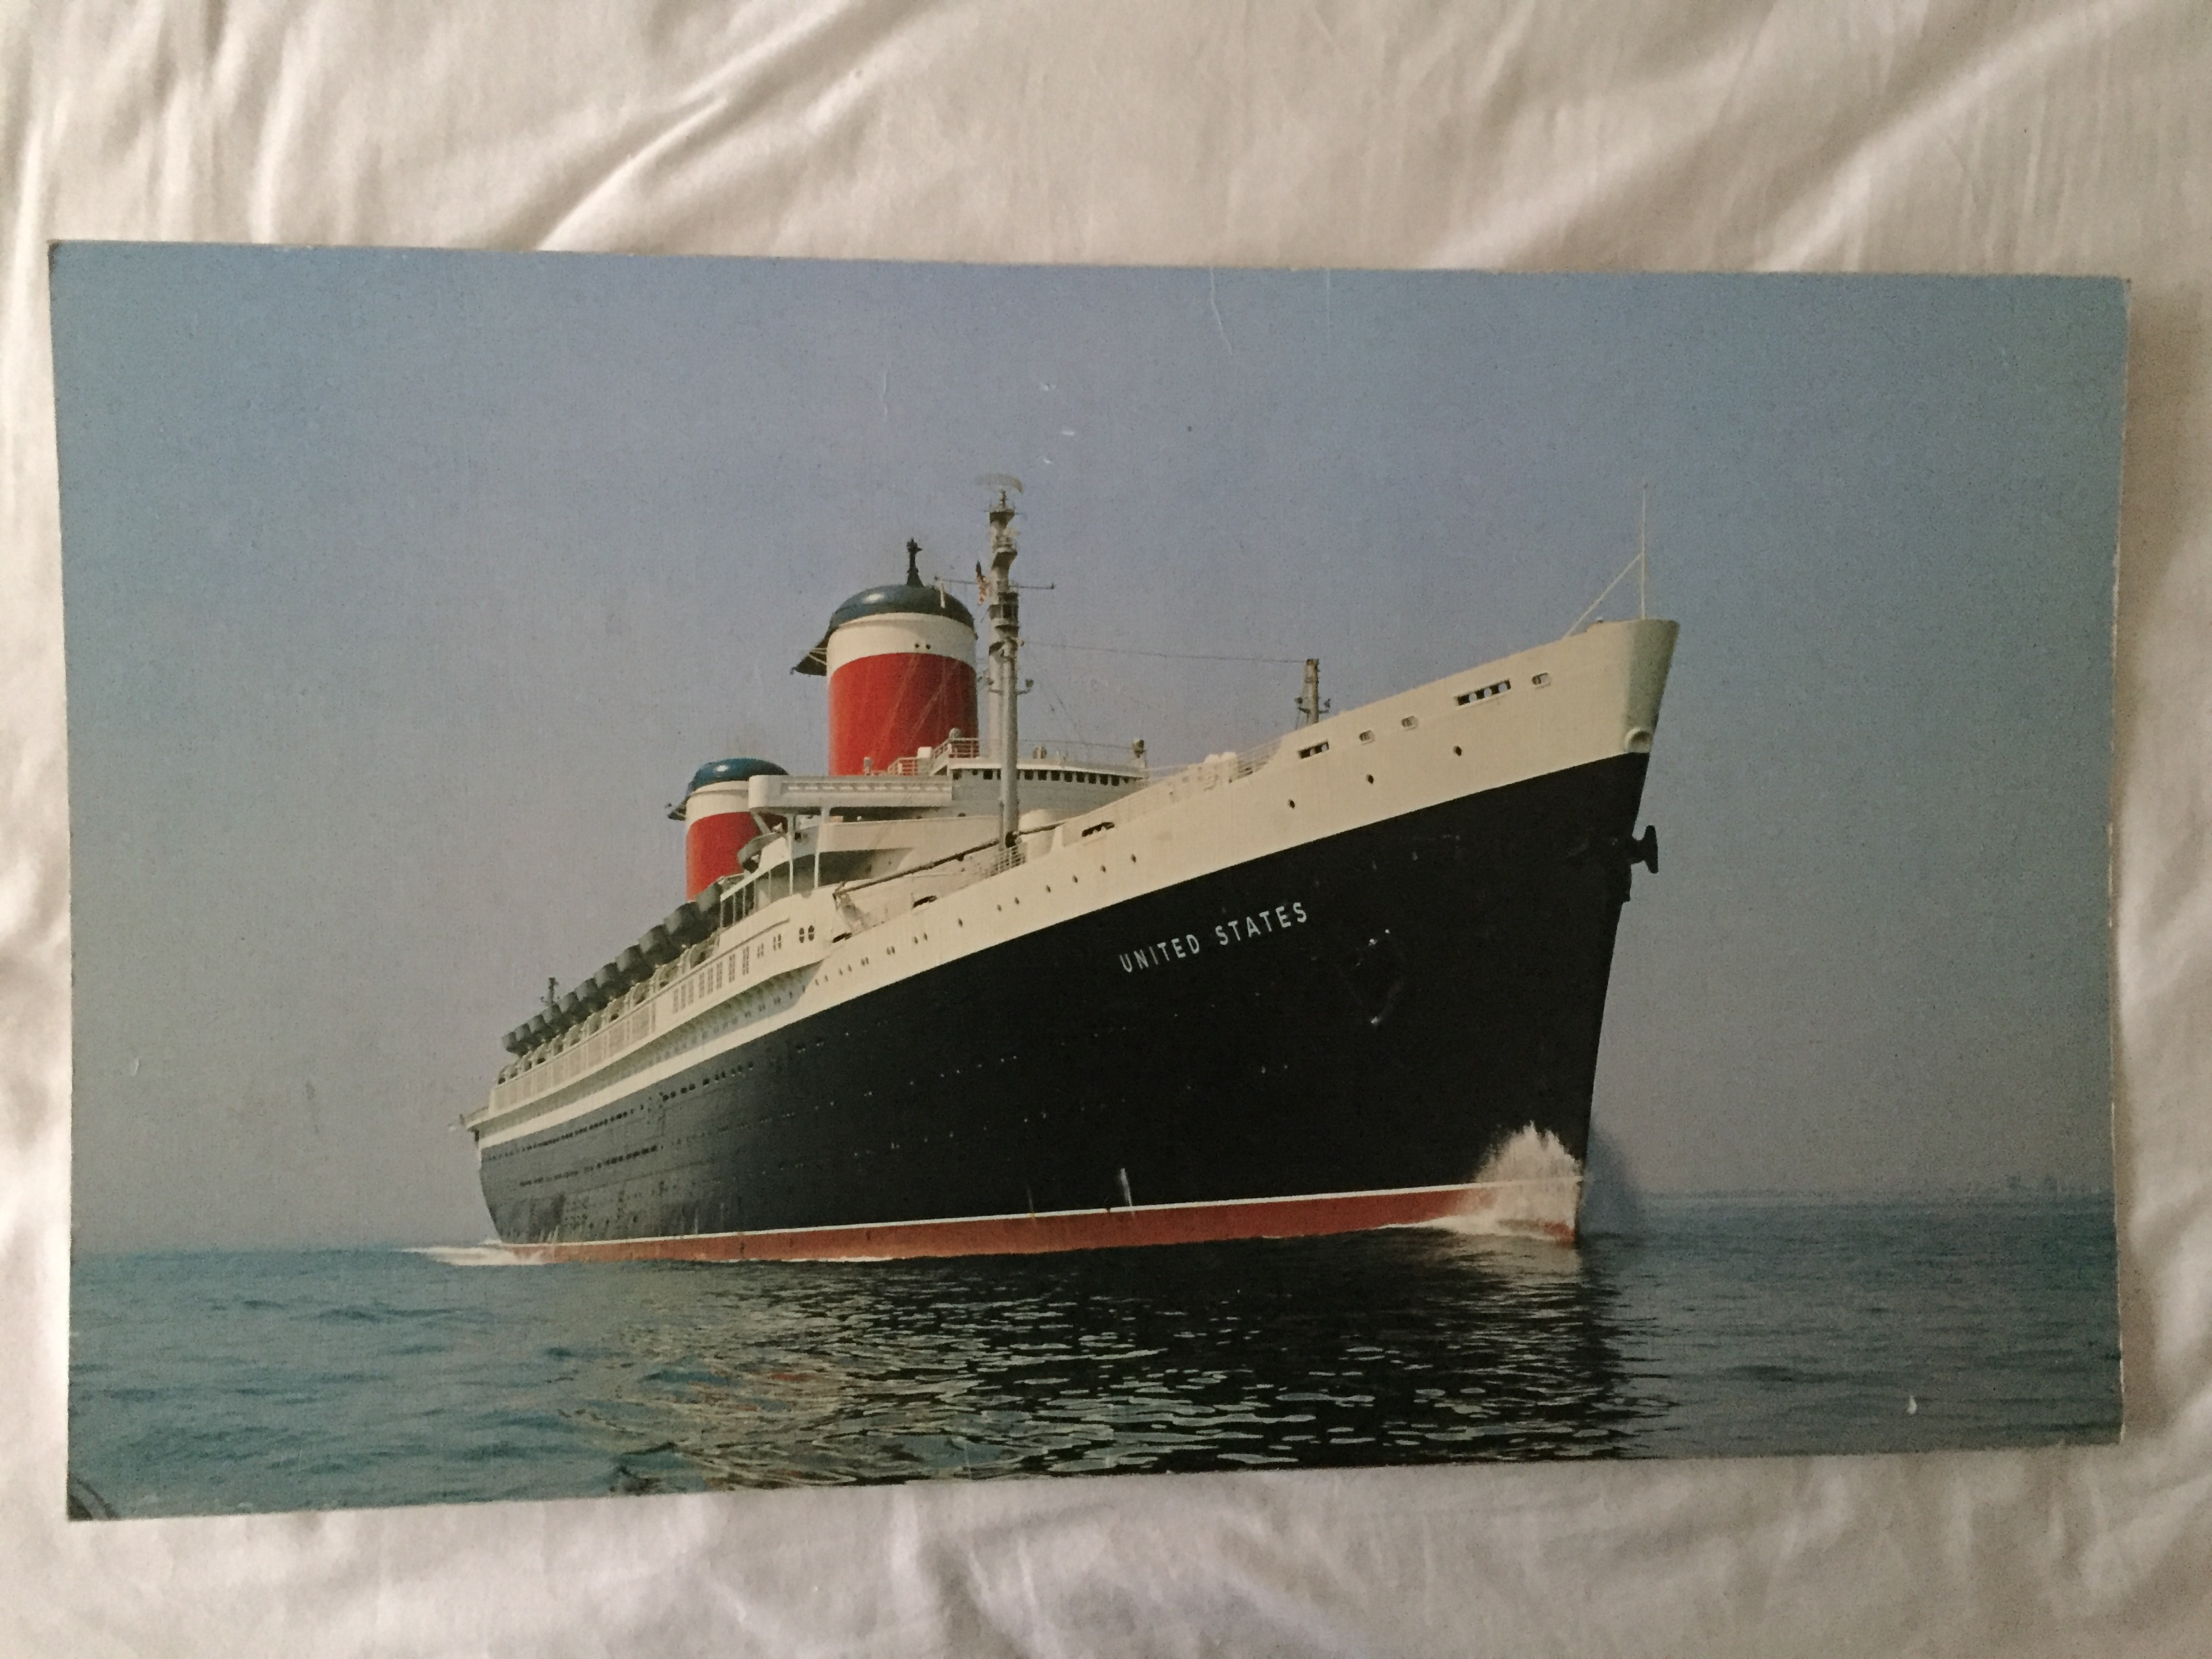 LARGE PRINTED PICTURE OF THE VESSEL THE UNITED STATES WHICH IS ON CARDBOARD BACKING